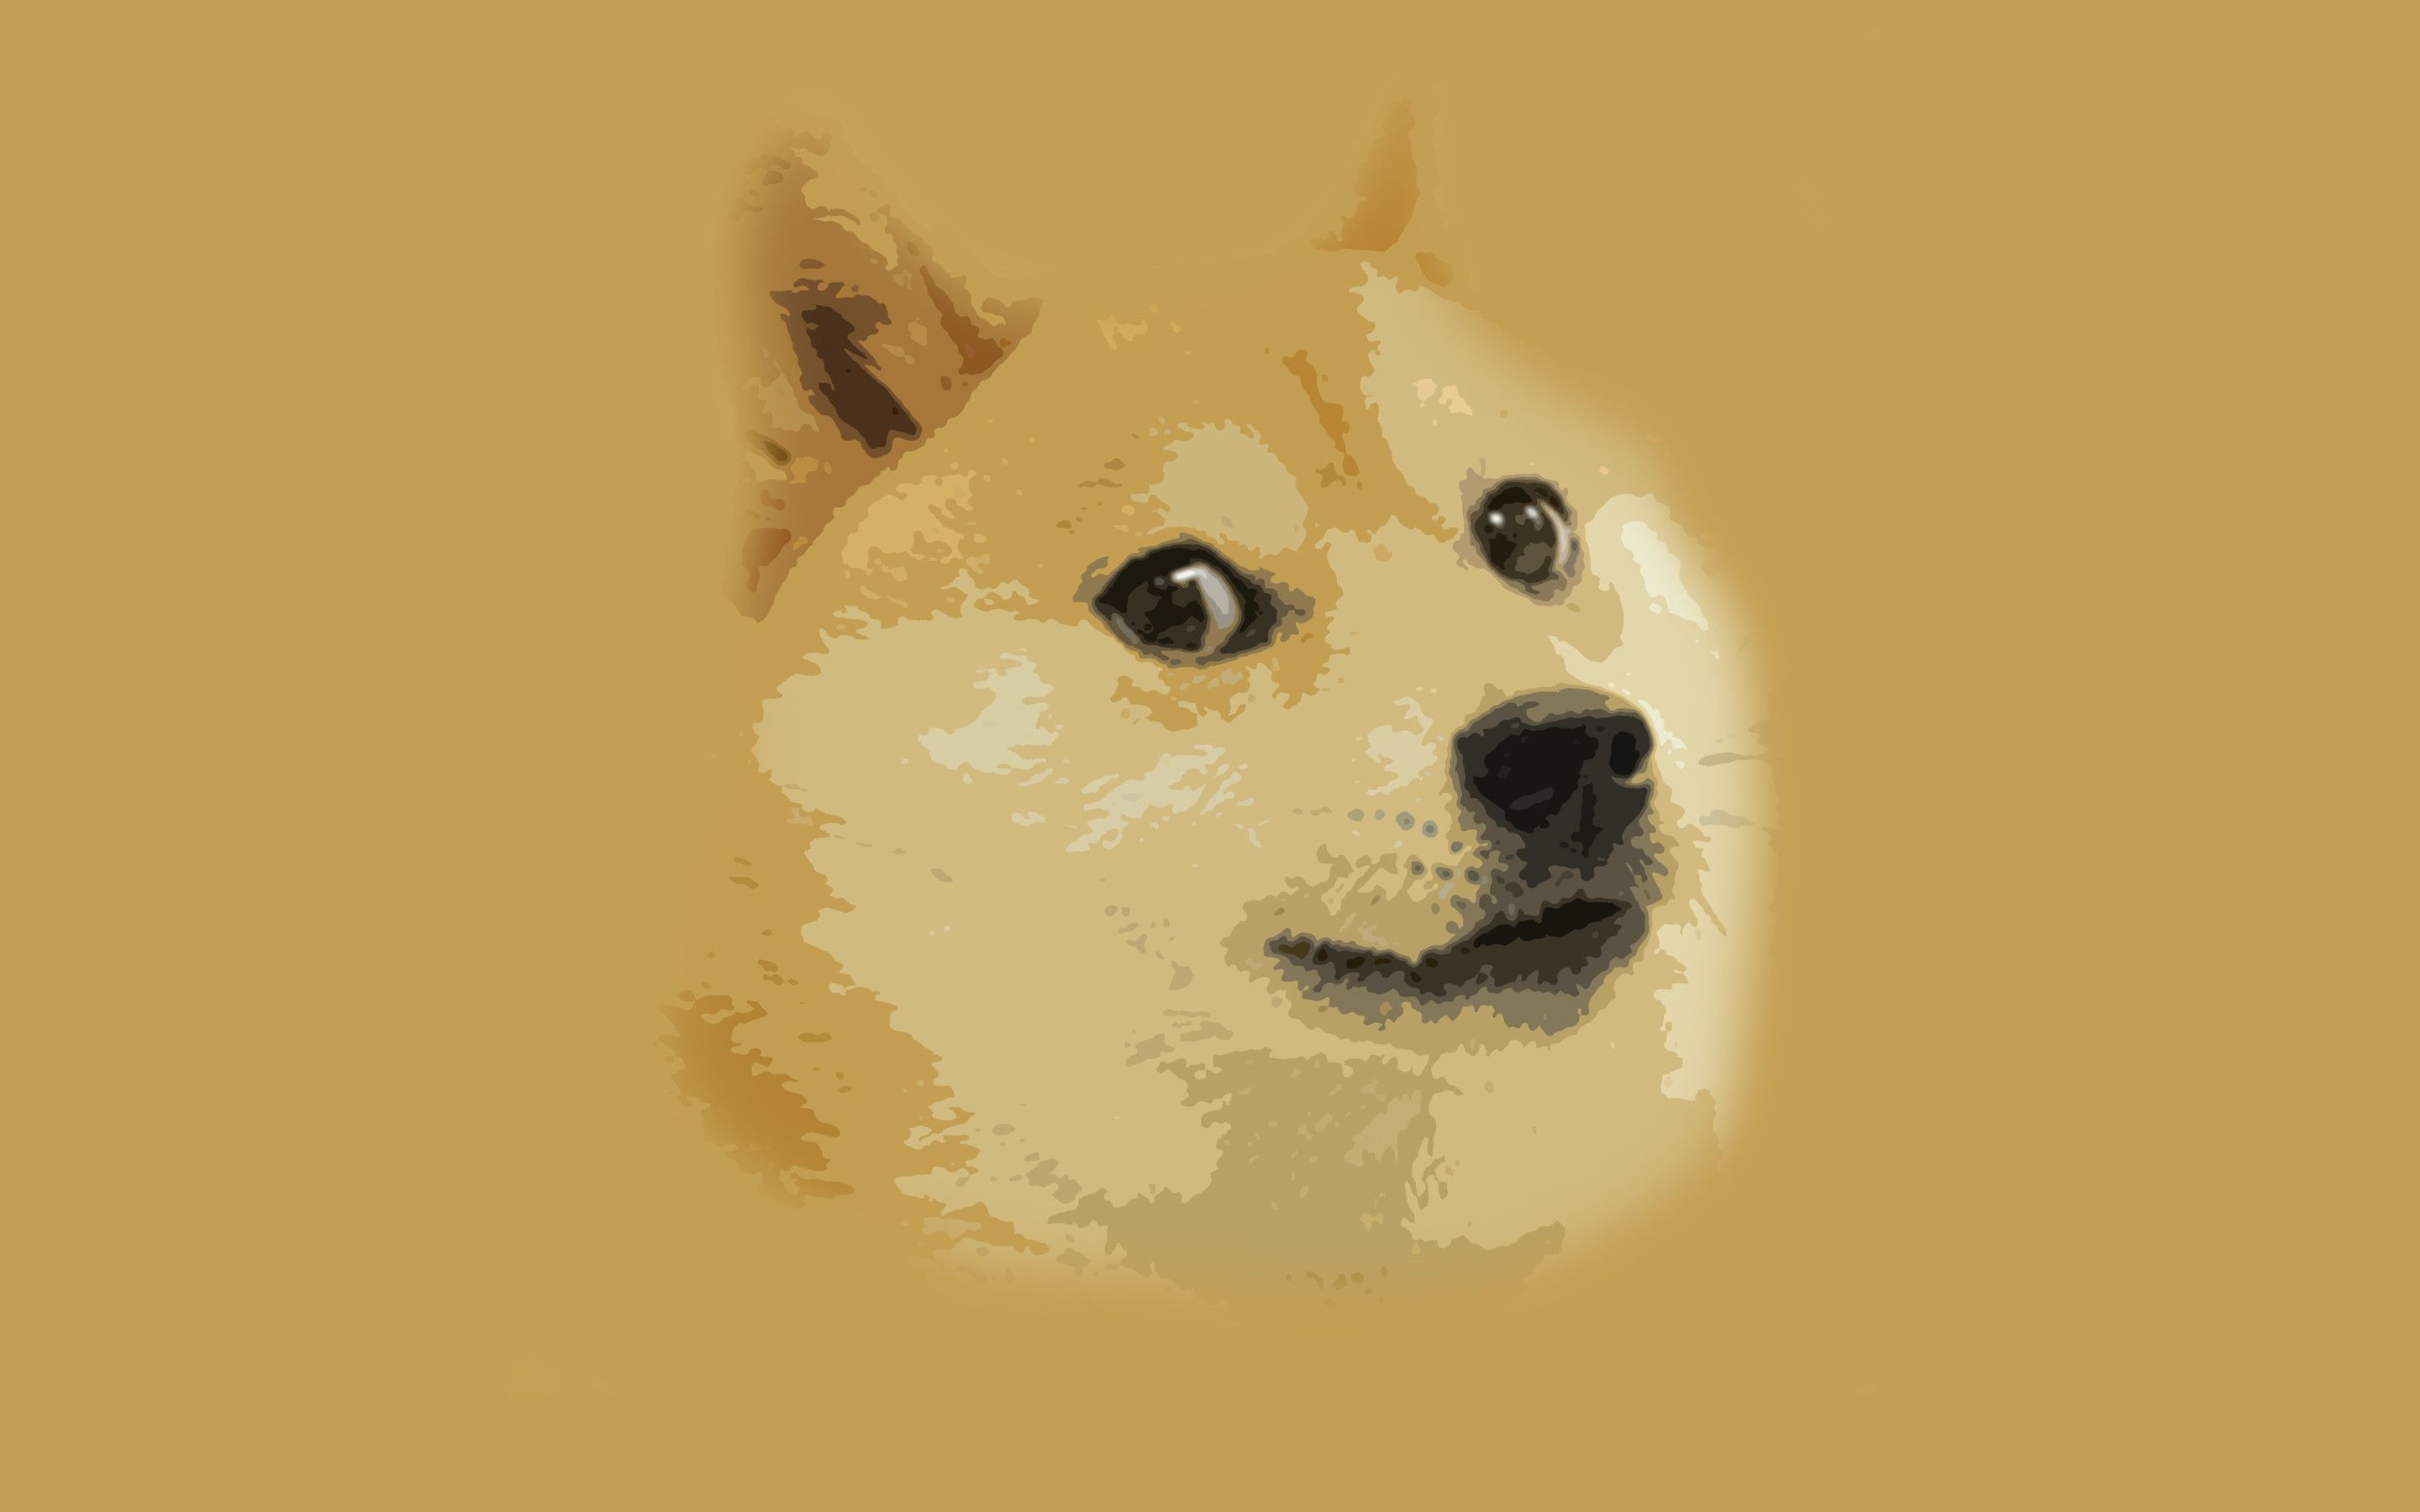 Doge Wallpaper - Doge Wallpaper (2880x1800) (47523)